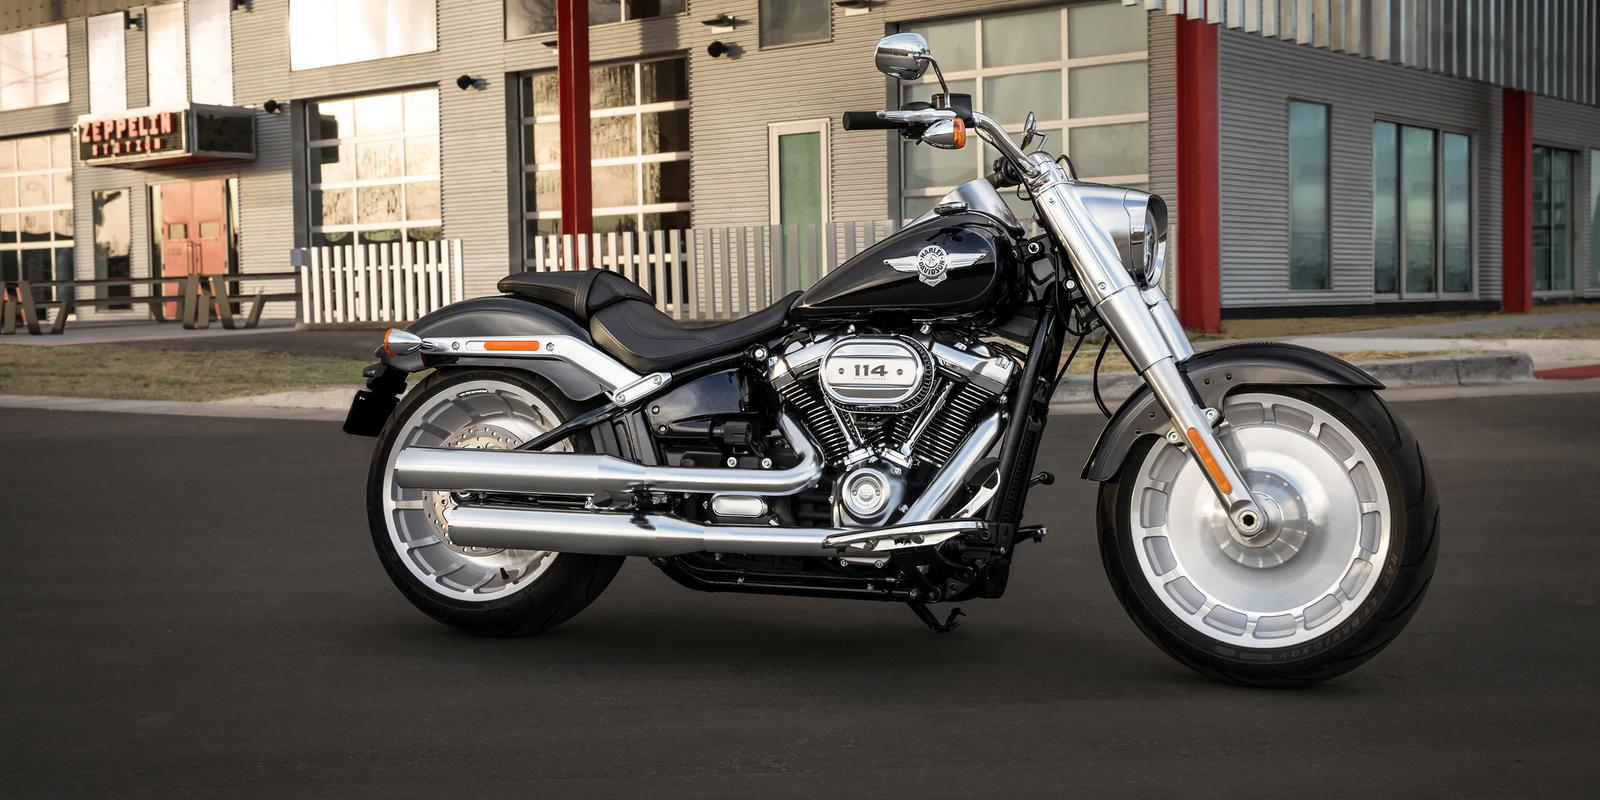 Used Harley Davidson Motorcycles   Quincy IL   Smith Brothers